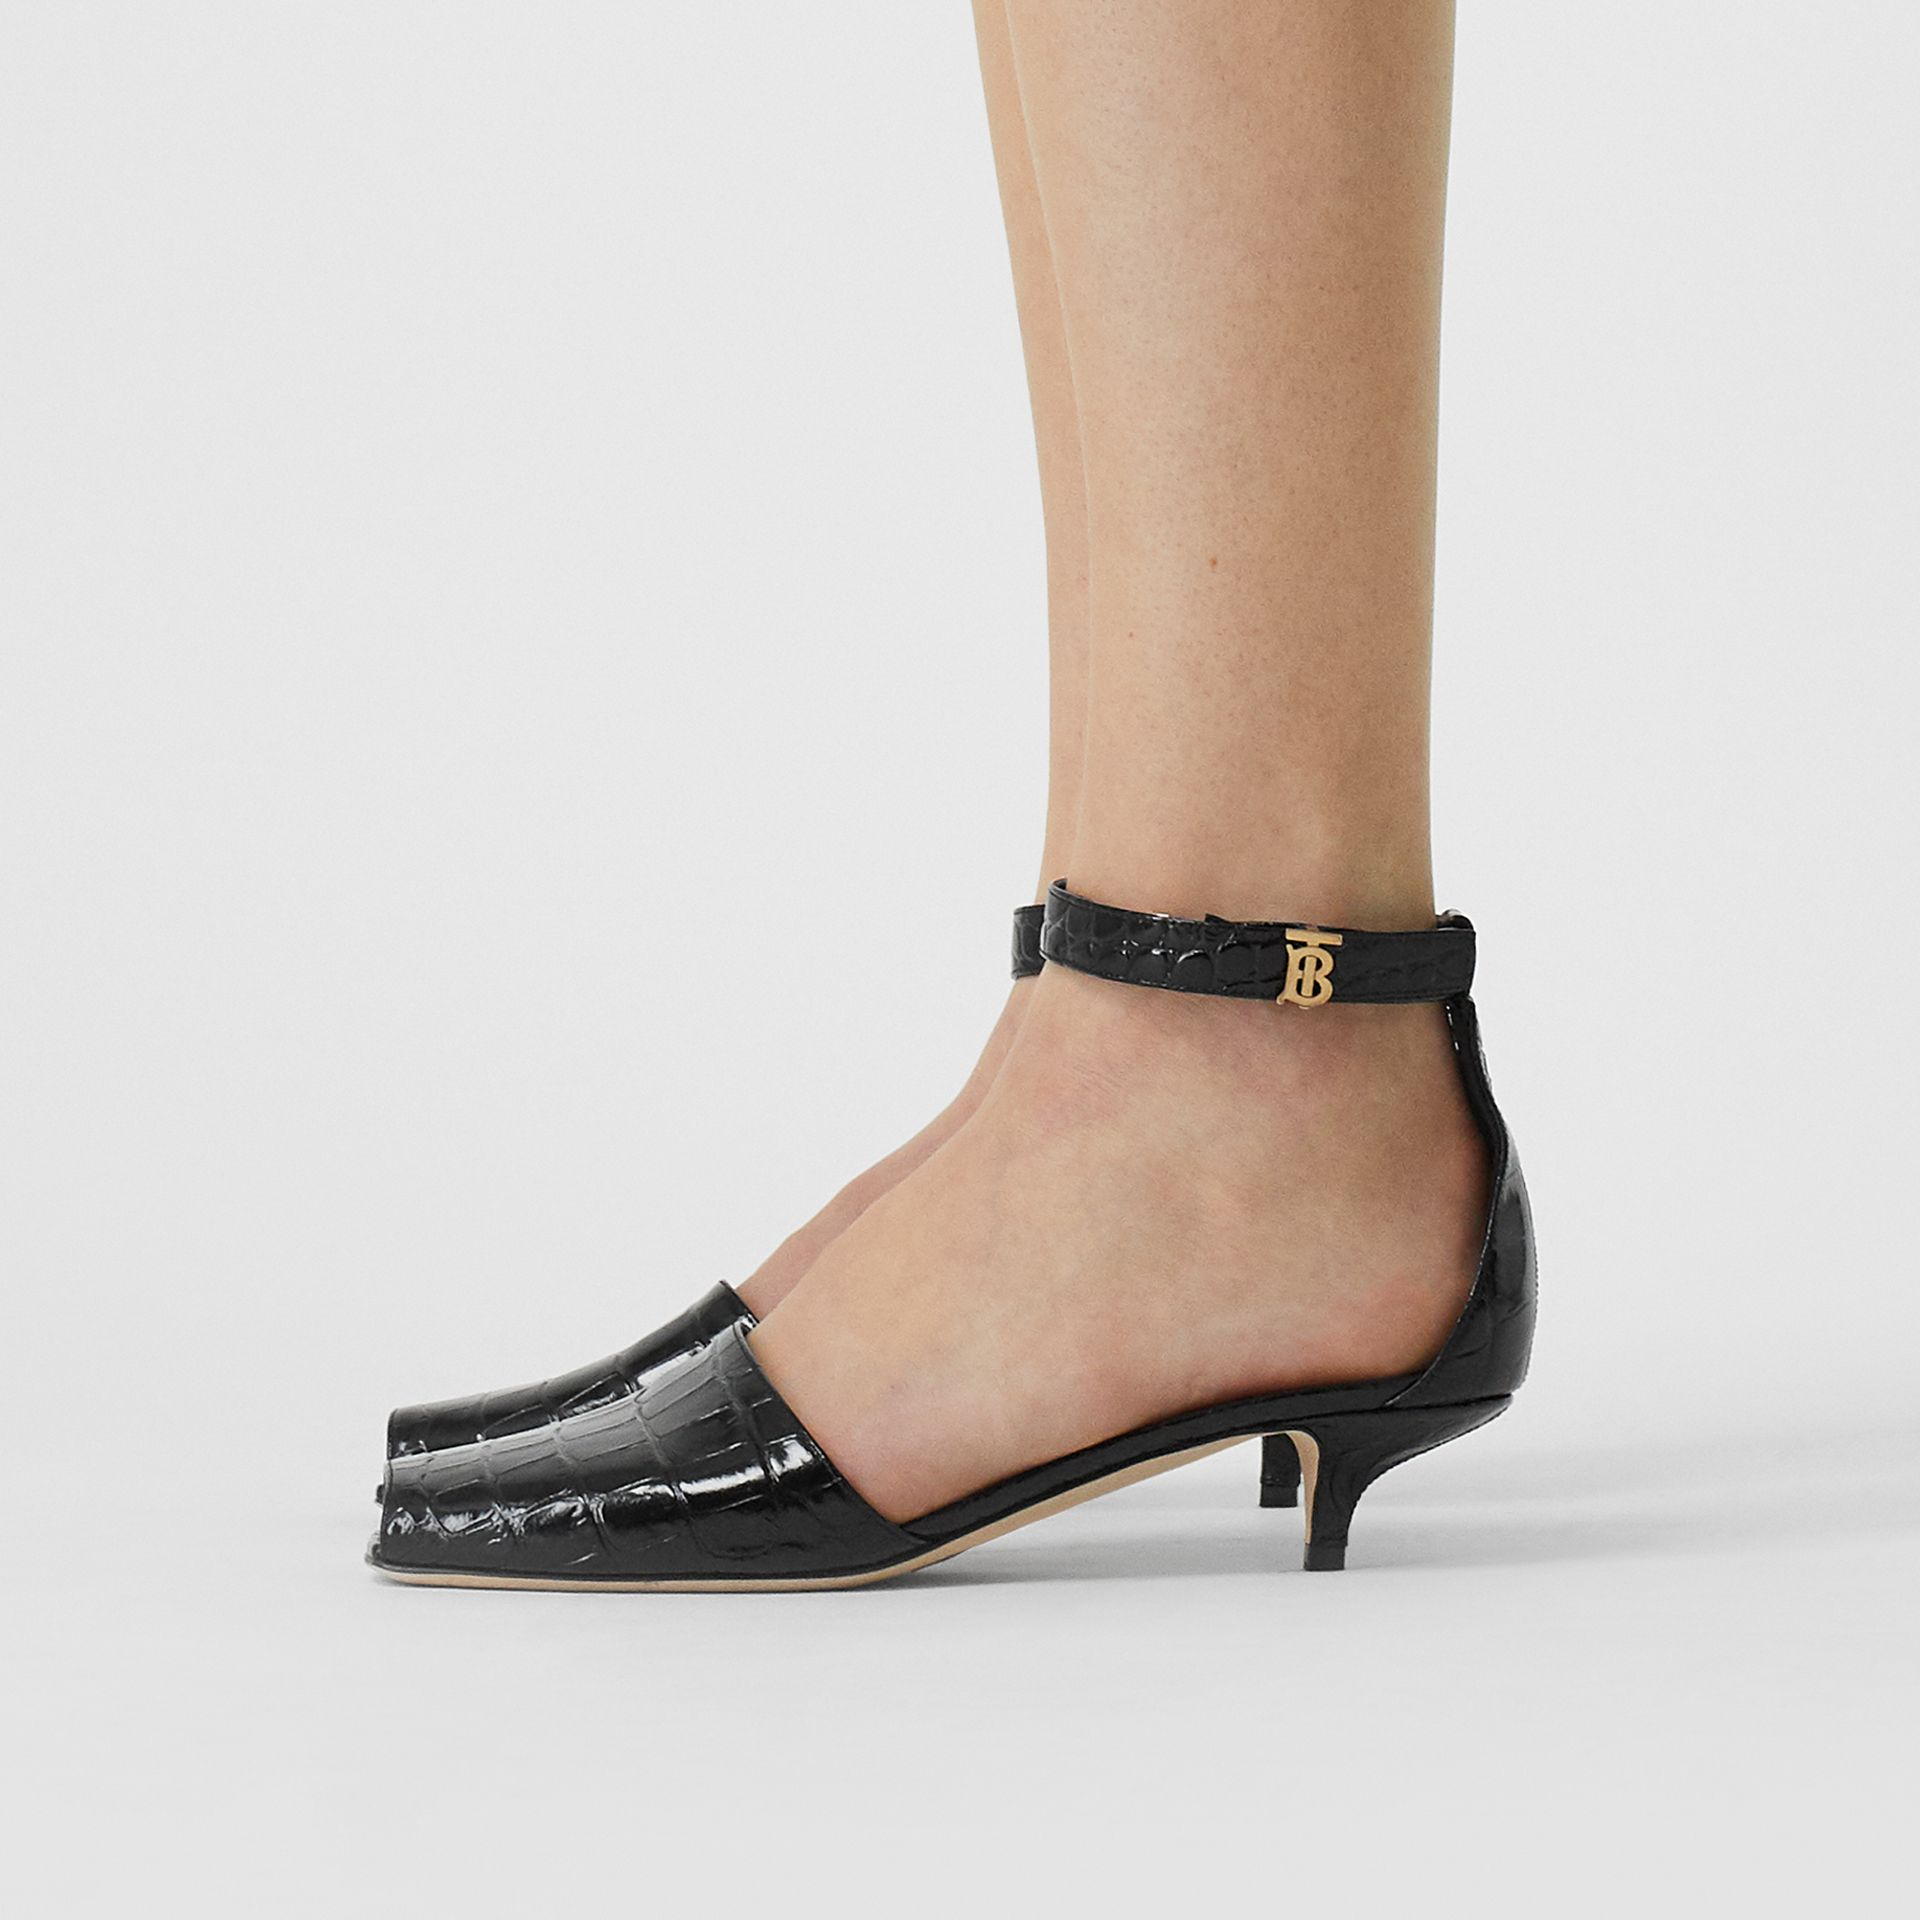 Monogram Motif Embossed Leather Sandals in Black - Women | Burberry - gallery image 1